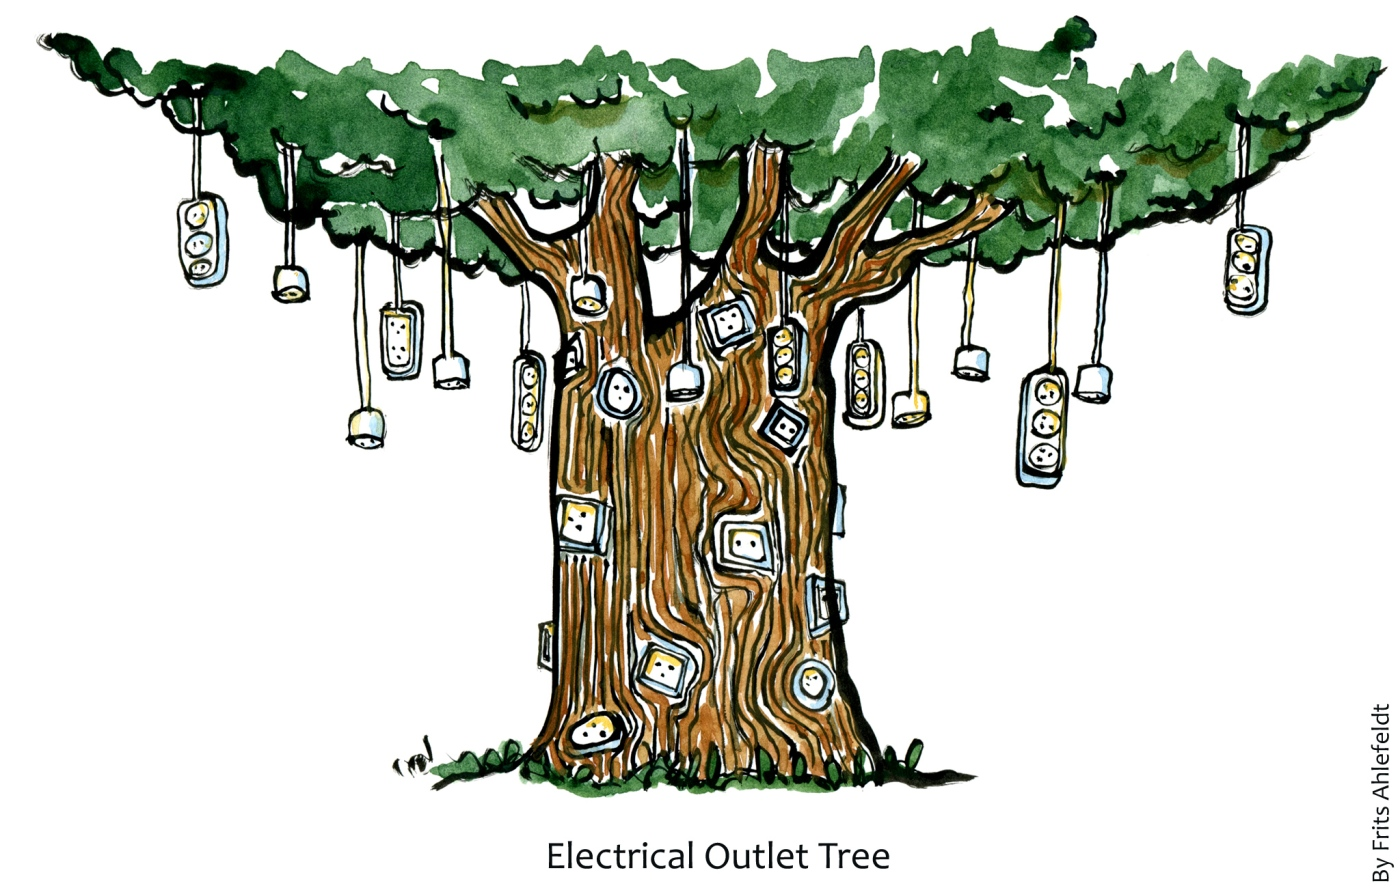 Tree with electricity outlets drawing